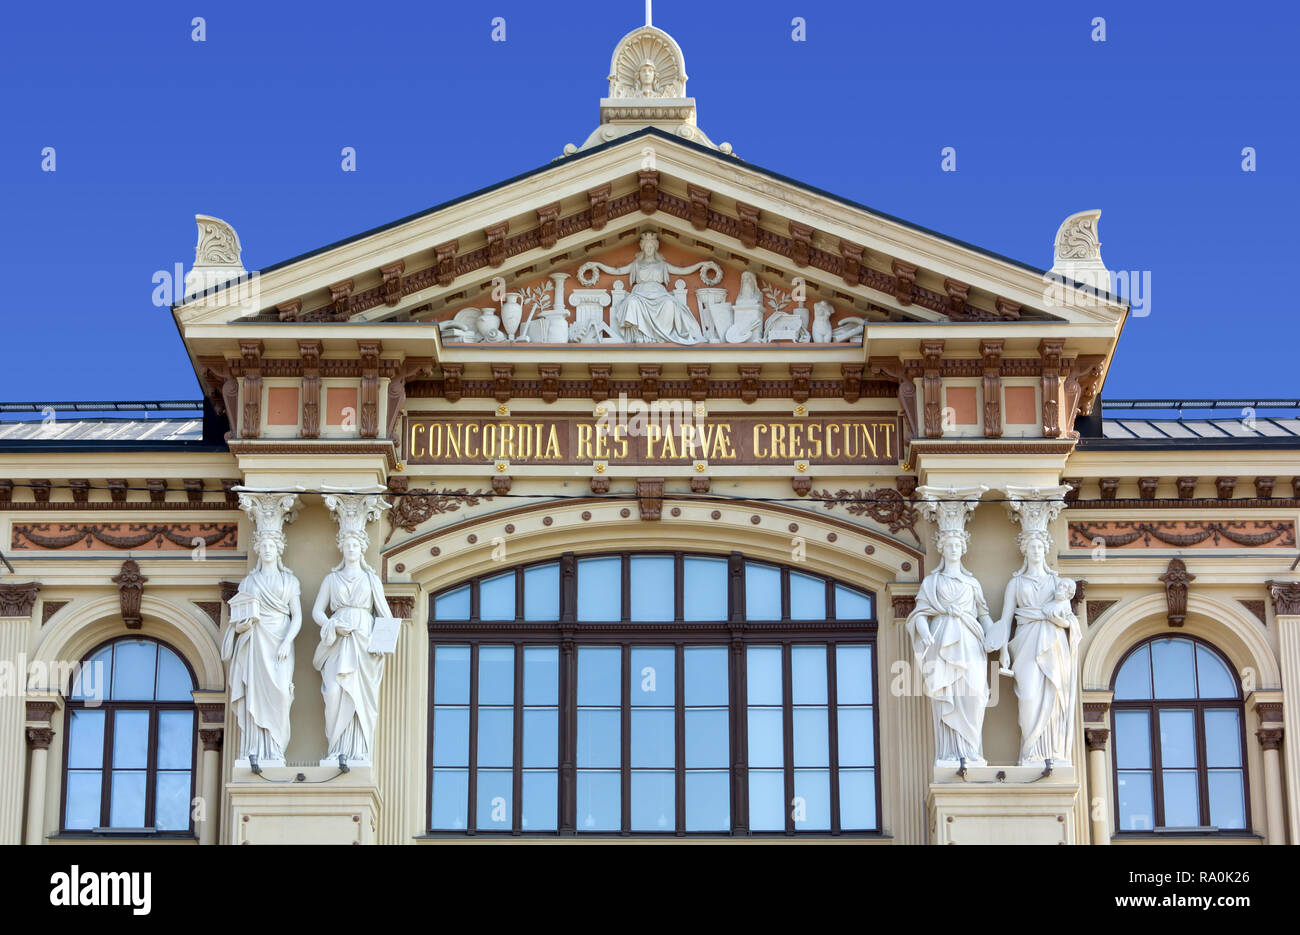 Close-Up on the facade of Ateneum Art Museum in Helsinki, Finland - Stock Image